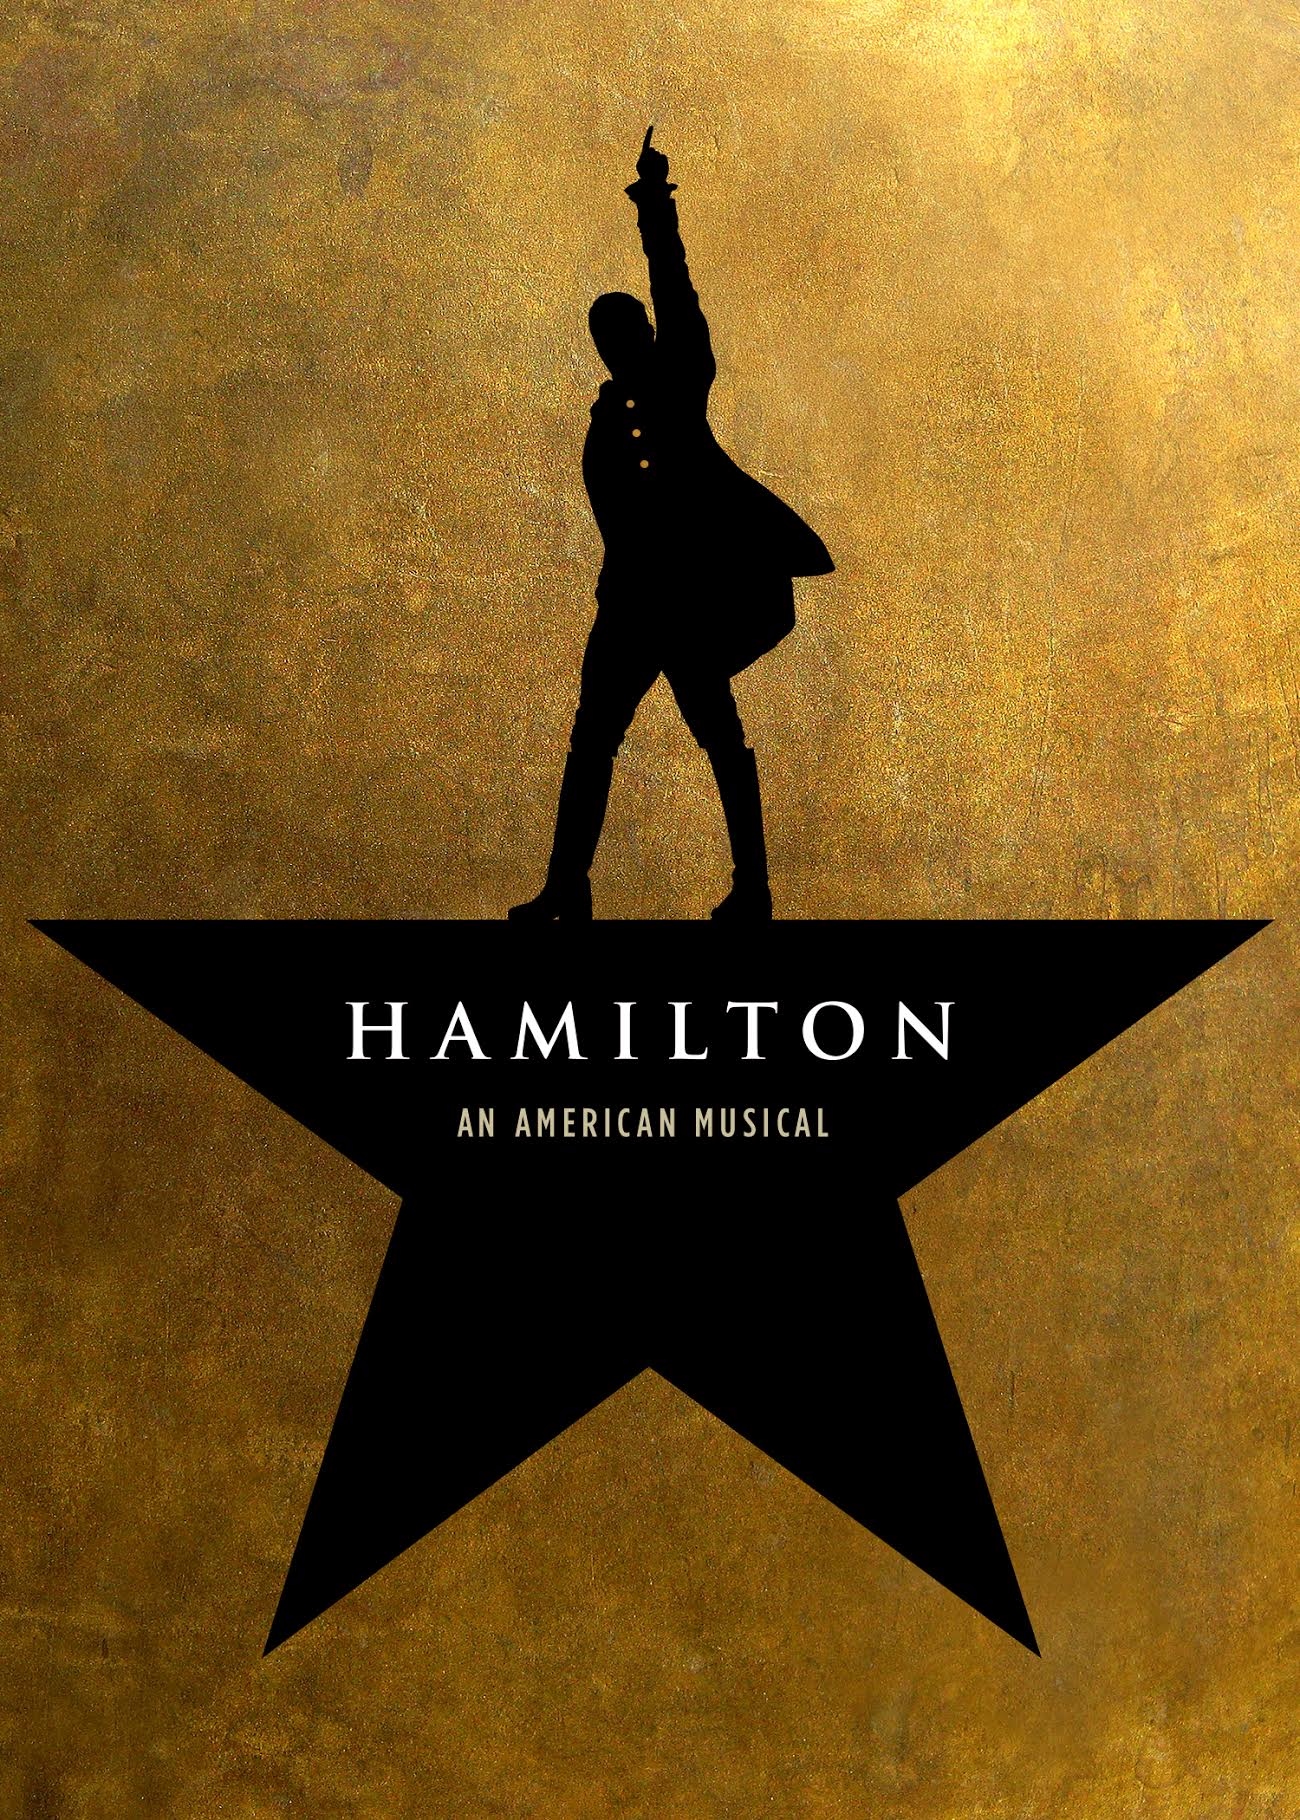 Four Seasons San Francisco Just Made It Super Easy to Score Hamilton Tickets